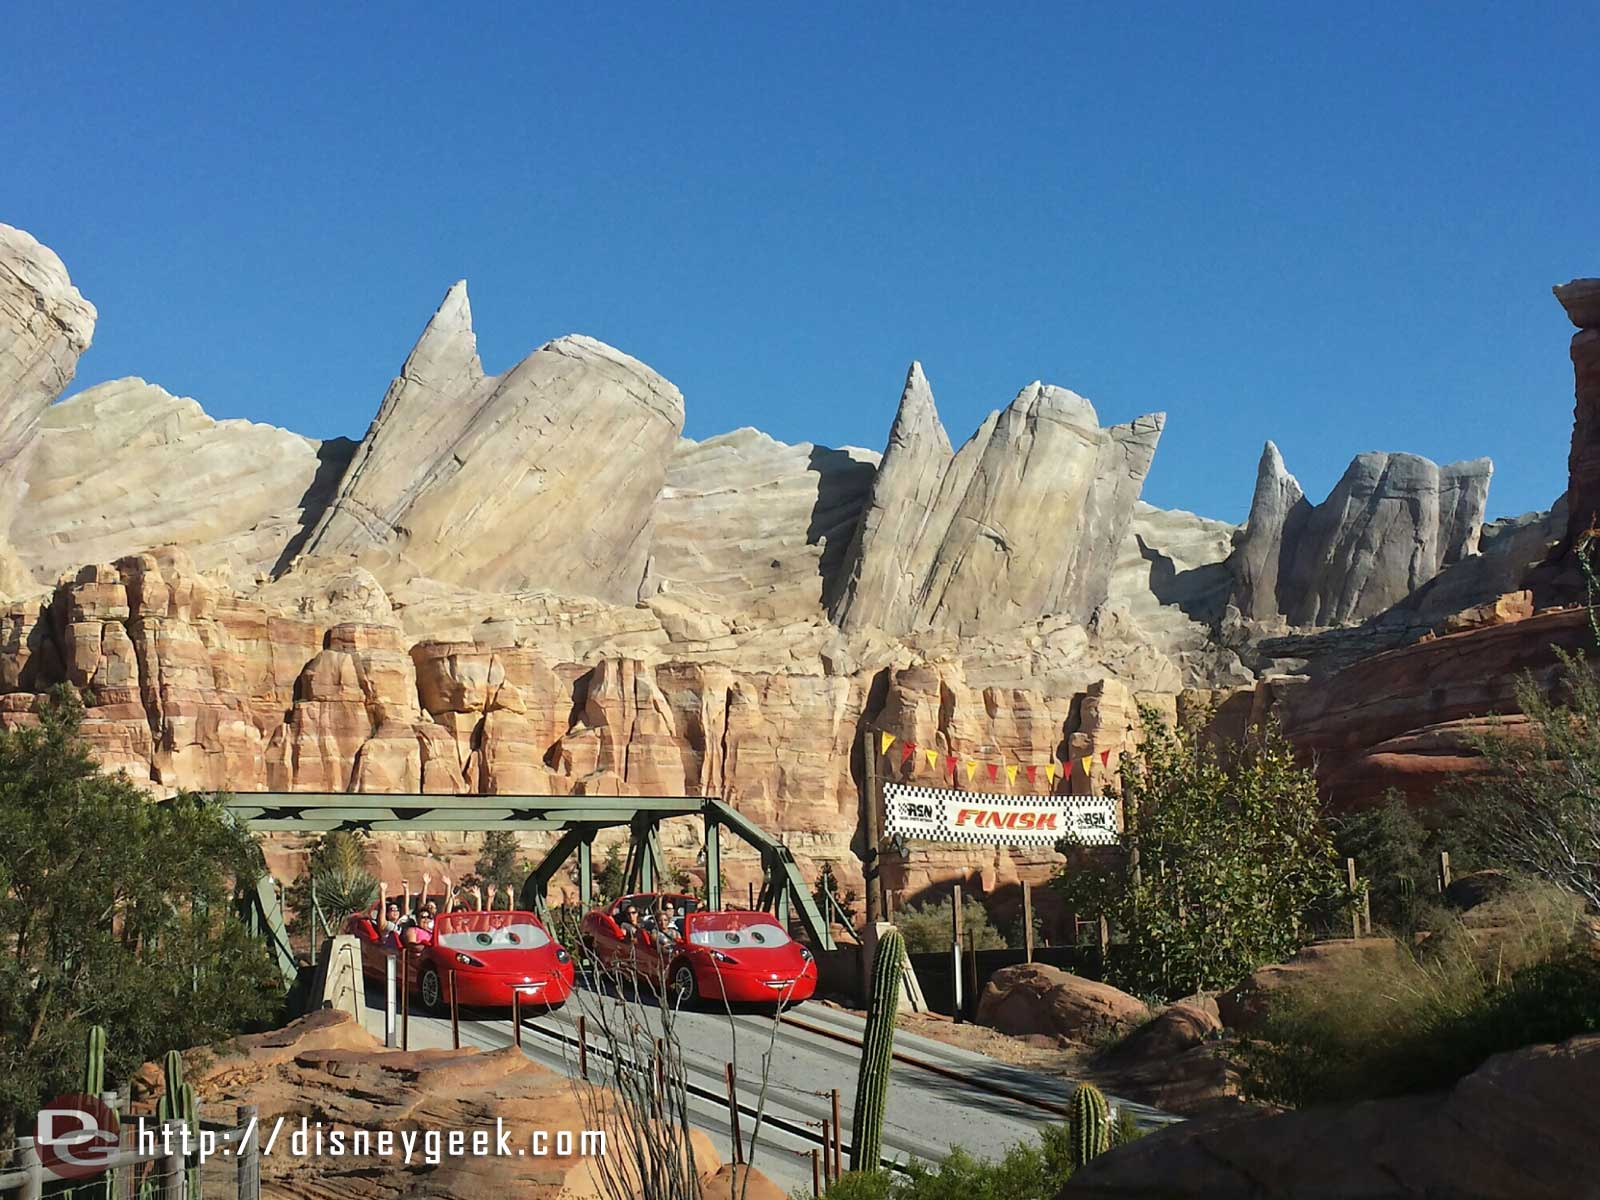 Radiator Springs Racers I bet the red car wins this #CarsLand